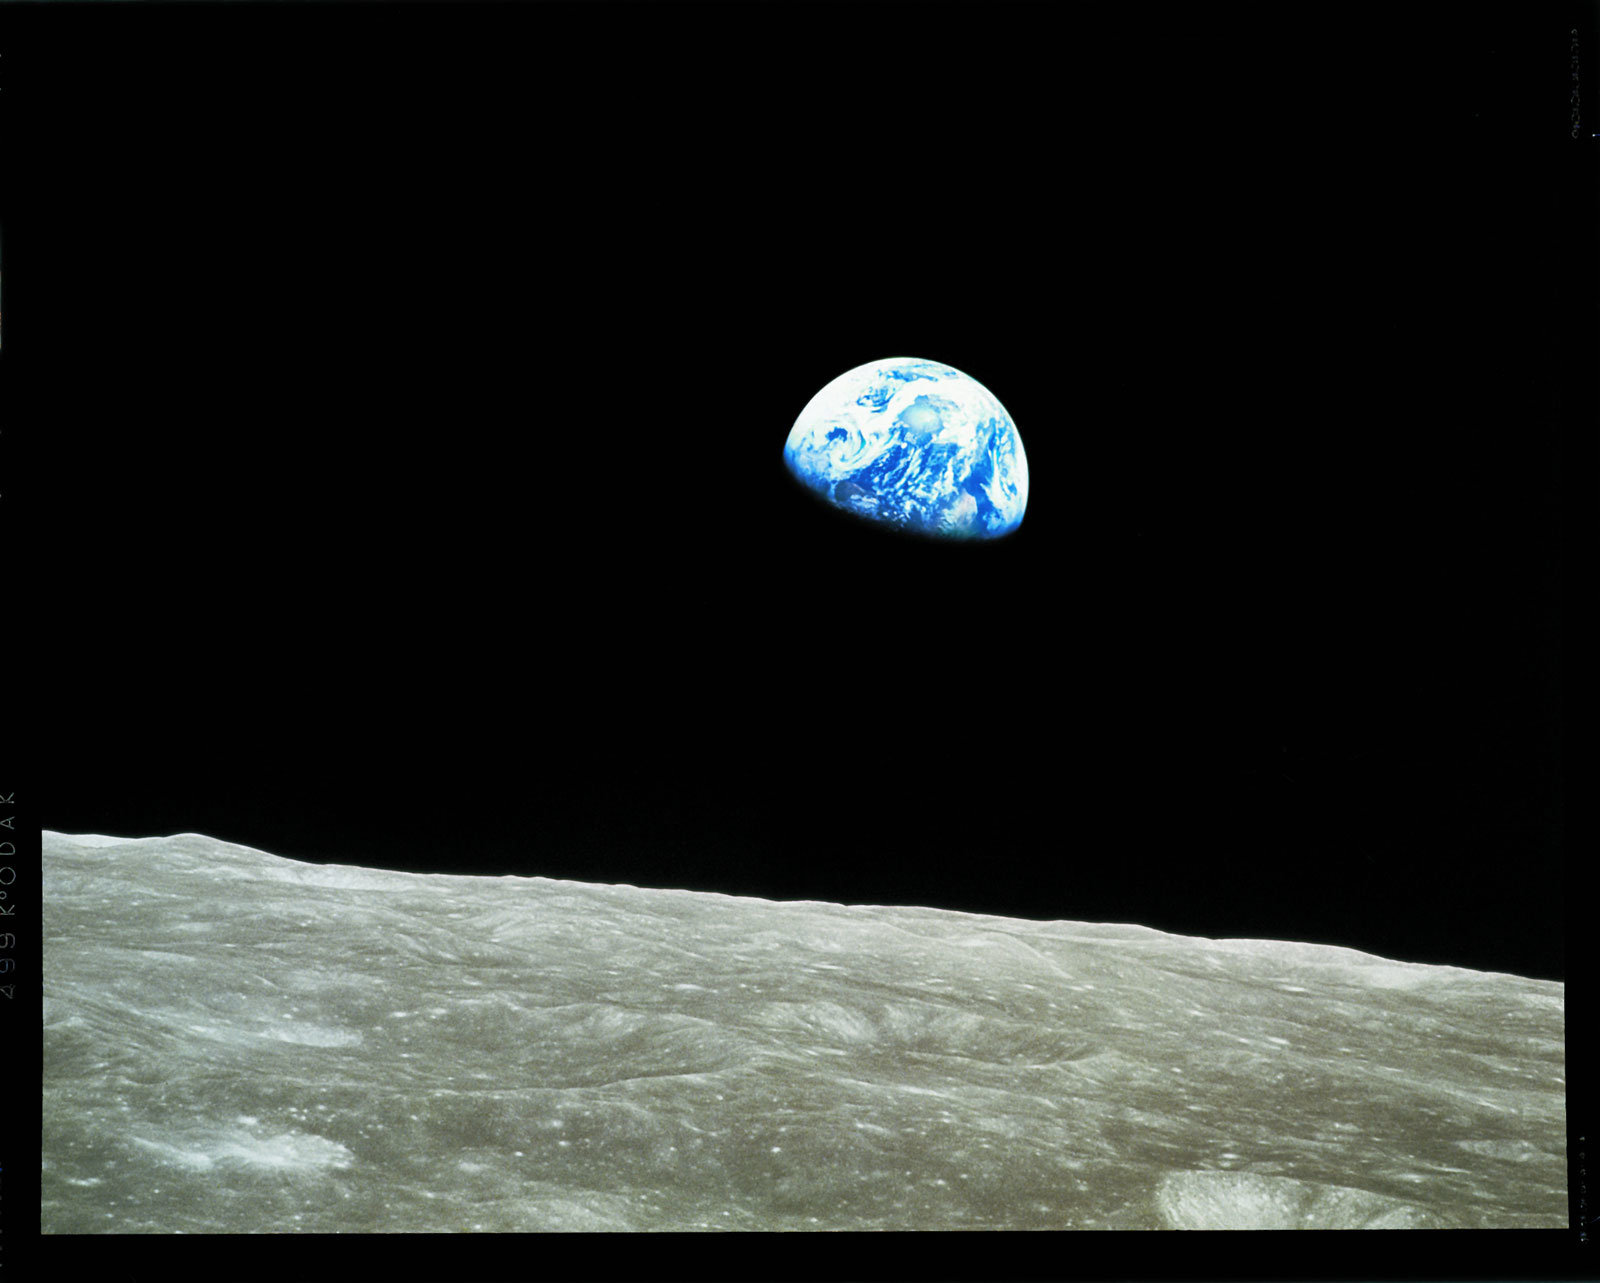 The Earth rises over the horizon of the moon.